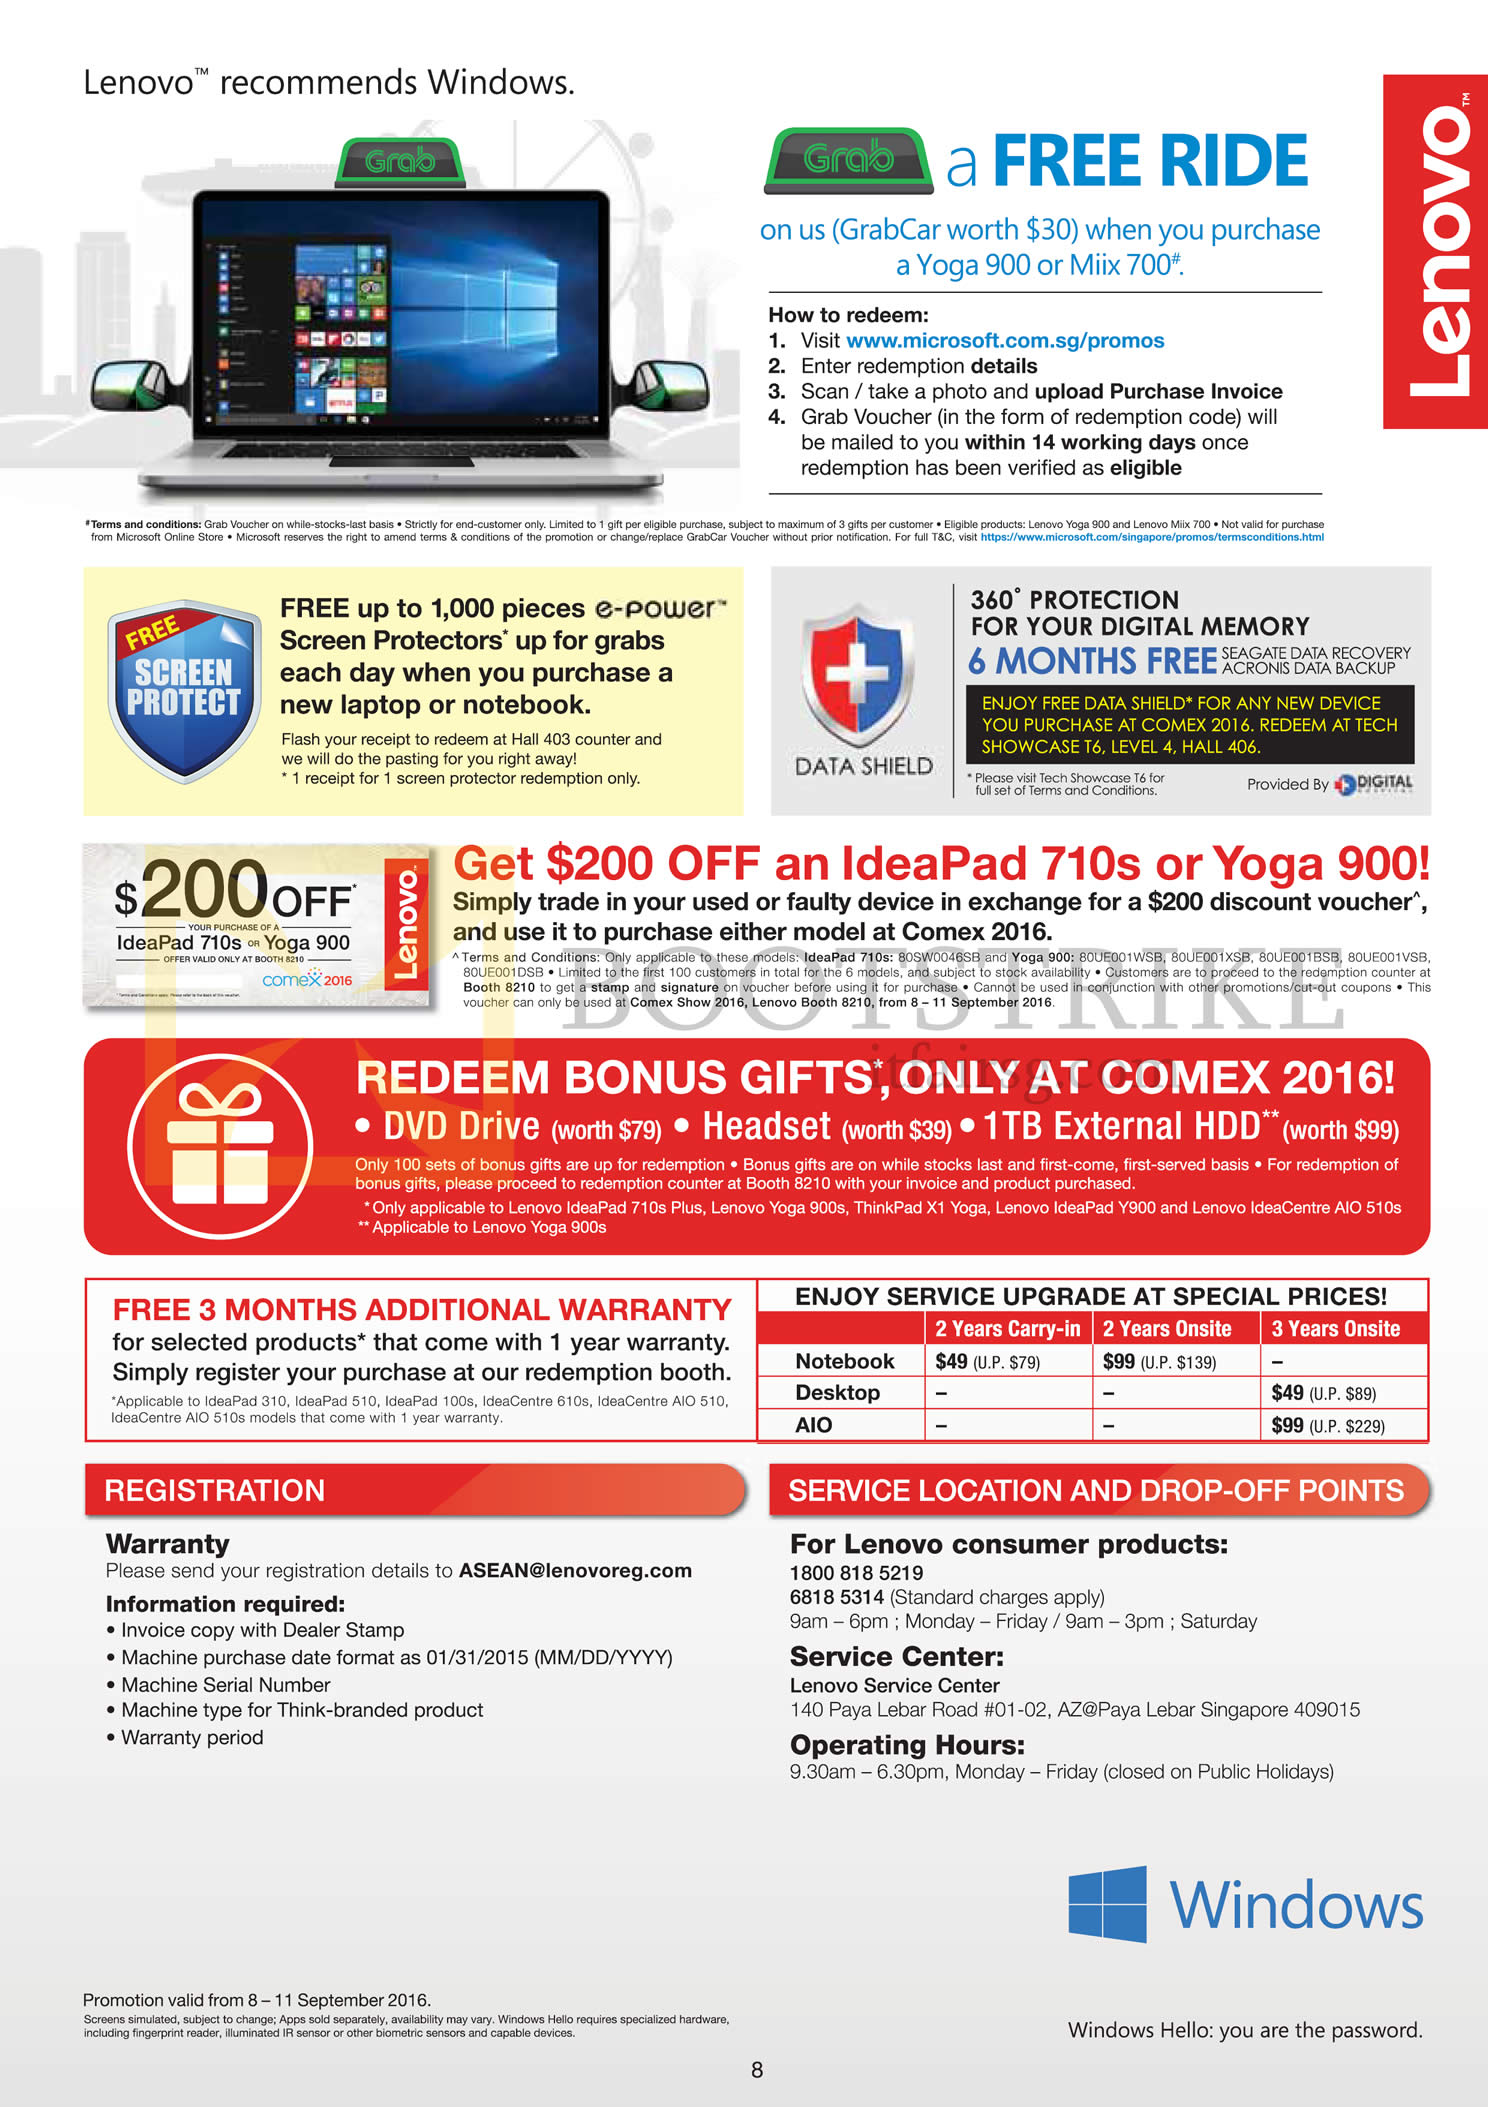 COMEX 2016 price list image brochure of Lenovo Free Grab Ride, Screen Protector, Trade-in, Bonus Gifts, Warranty, Service Location